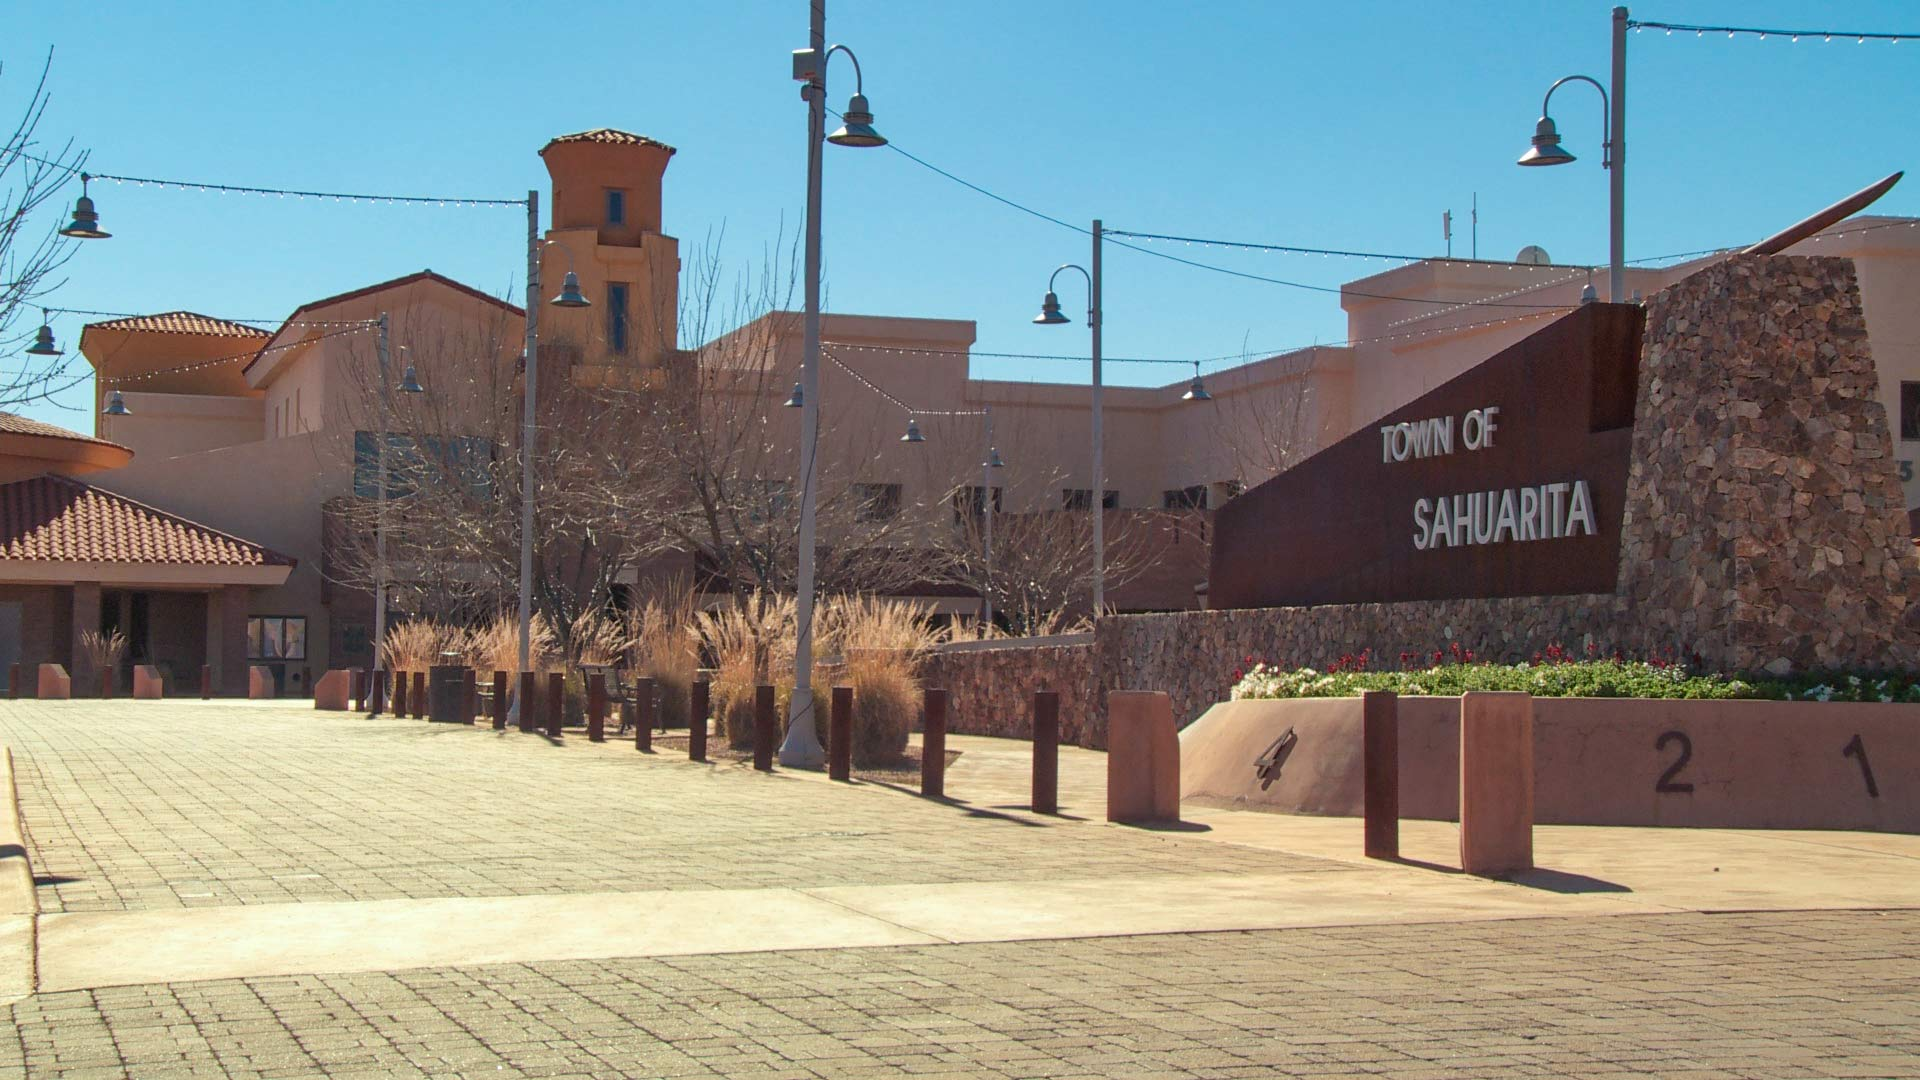 Sahuarita town center